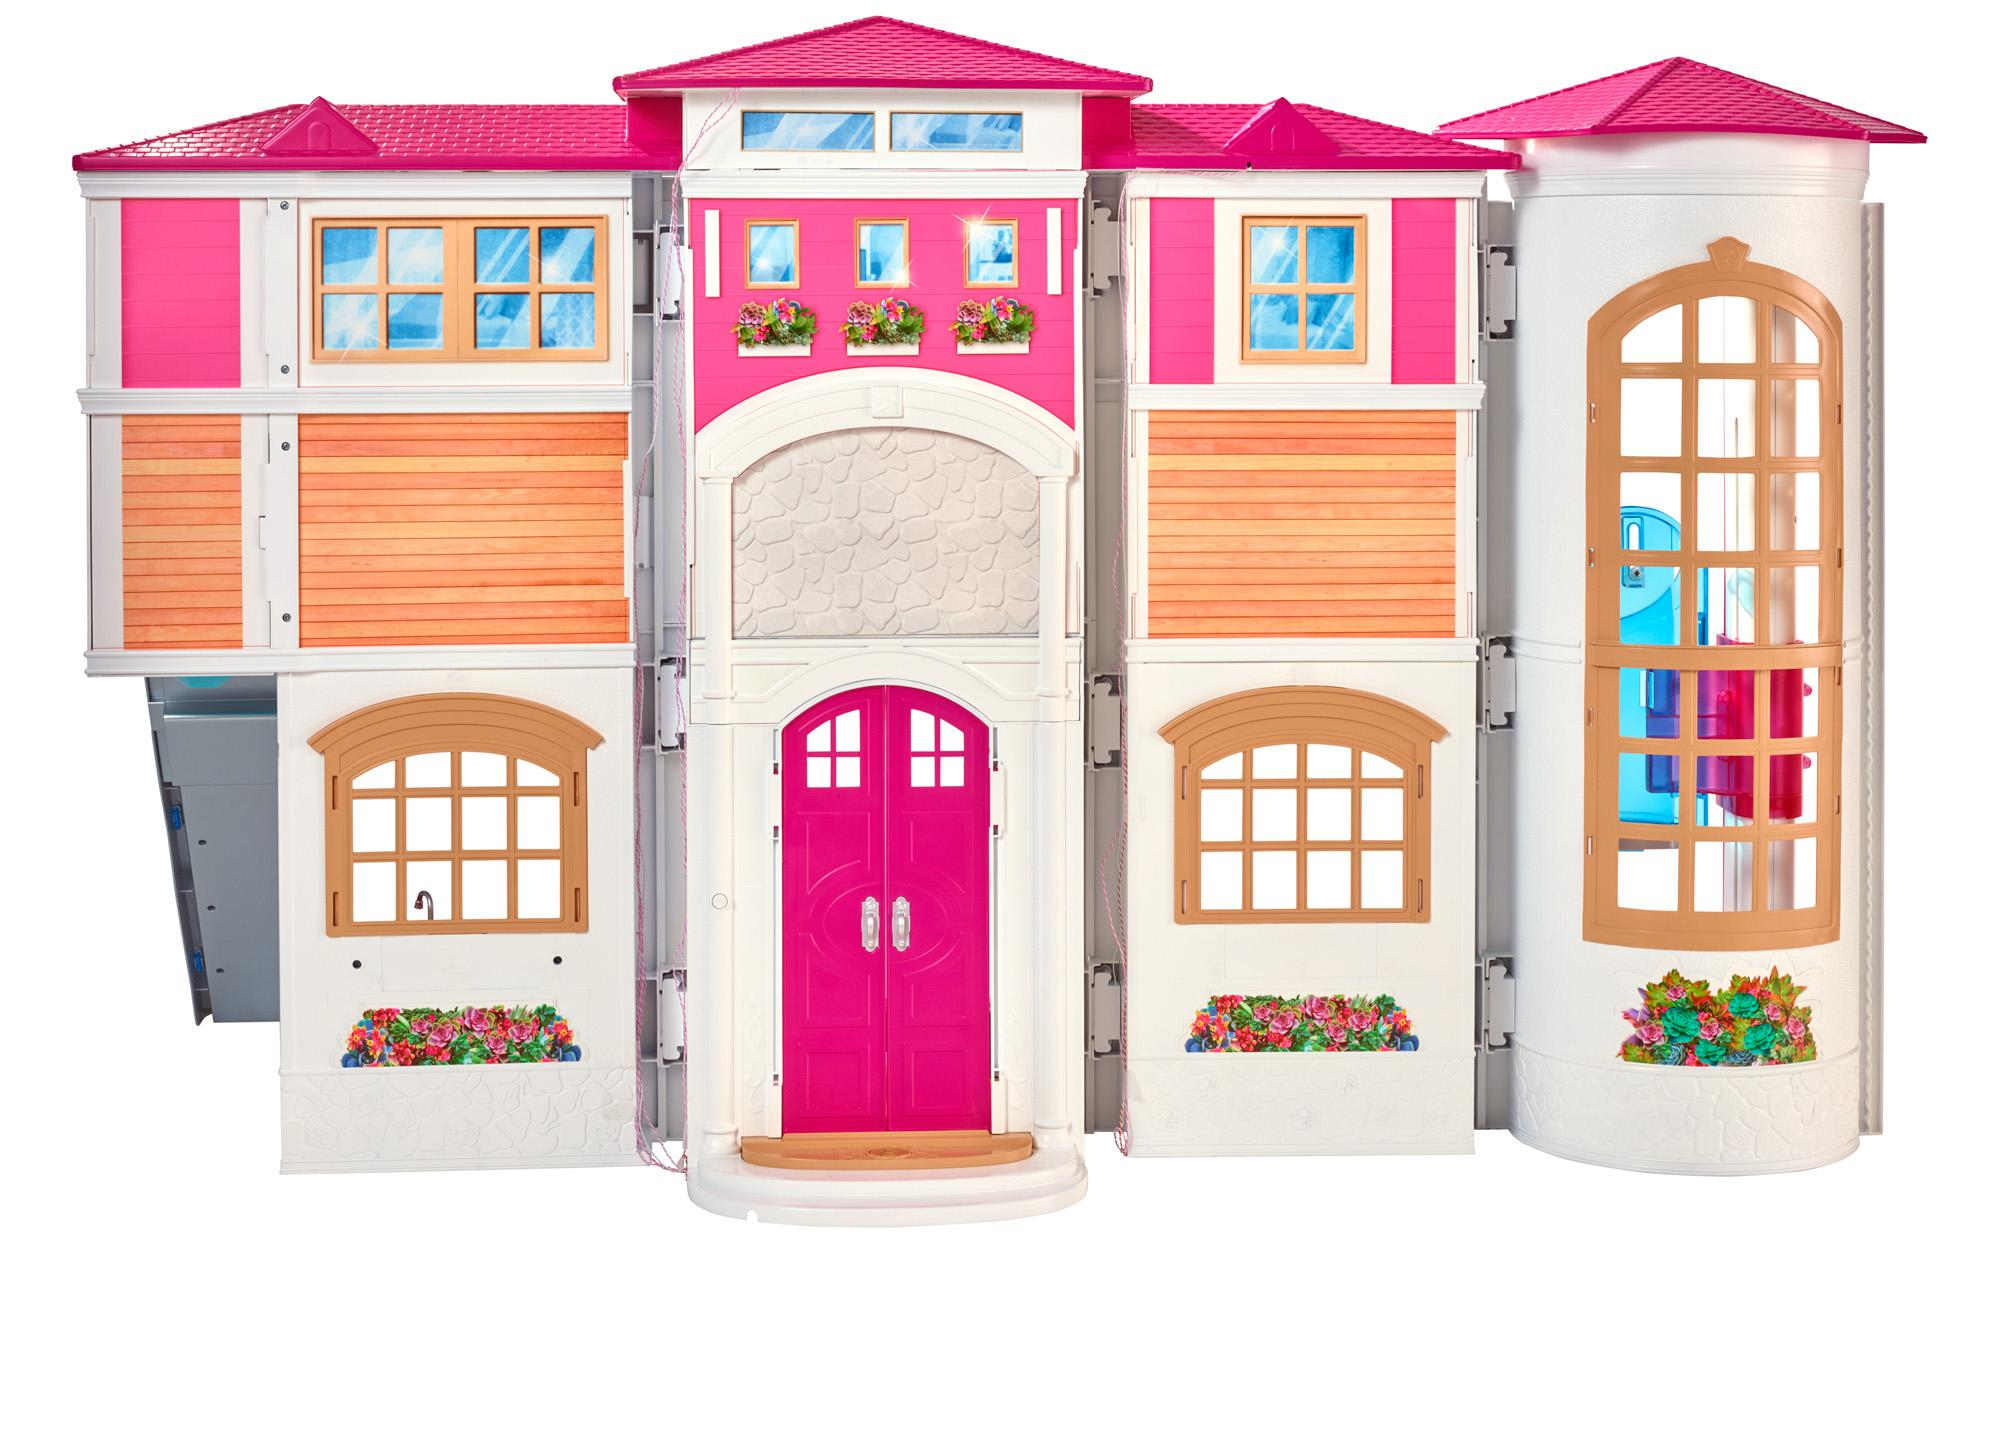 3d97e66b 5779 4f74 85be e8a42200e9a1._CB280625553__SR300300_ amazon com barbie hello dreamhouse toys & games Barbie Dreamhouse at bayanpartner.co